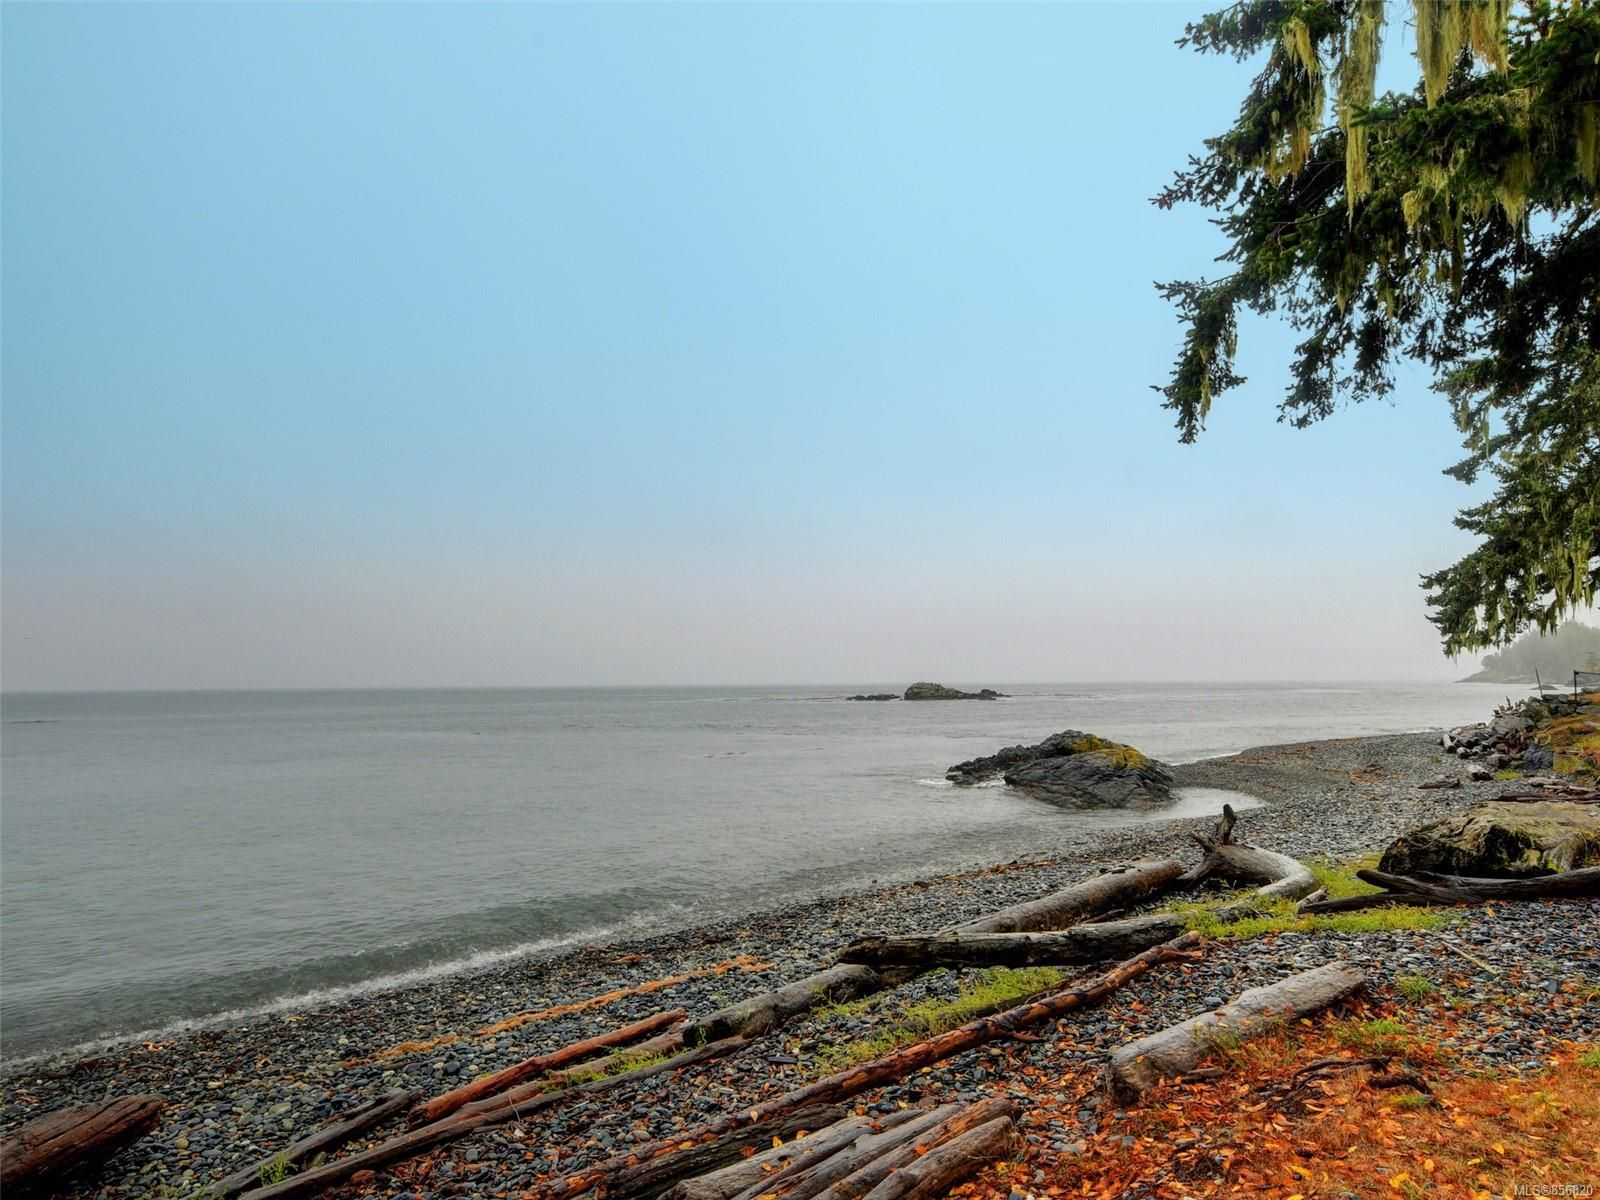 Photo 19: Photos: 25 7871 West Coast Rd in : Sk Kemp Lake Manufactured Home for sale (Sooke)  : MLS®# 856820